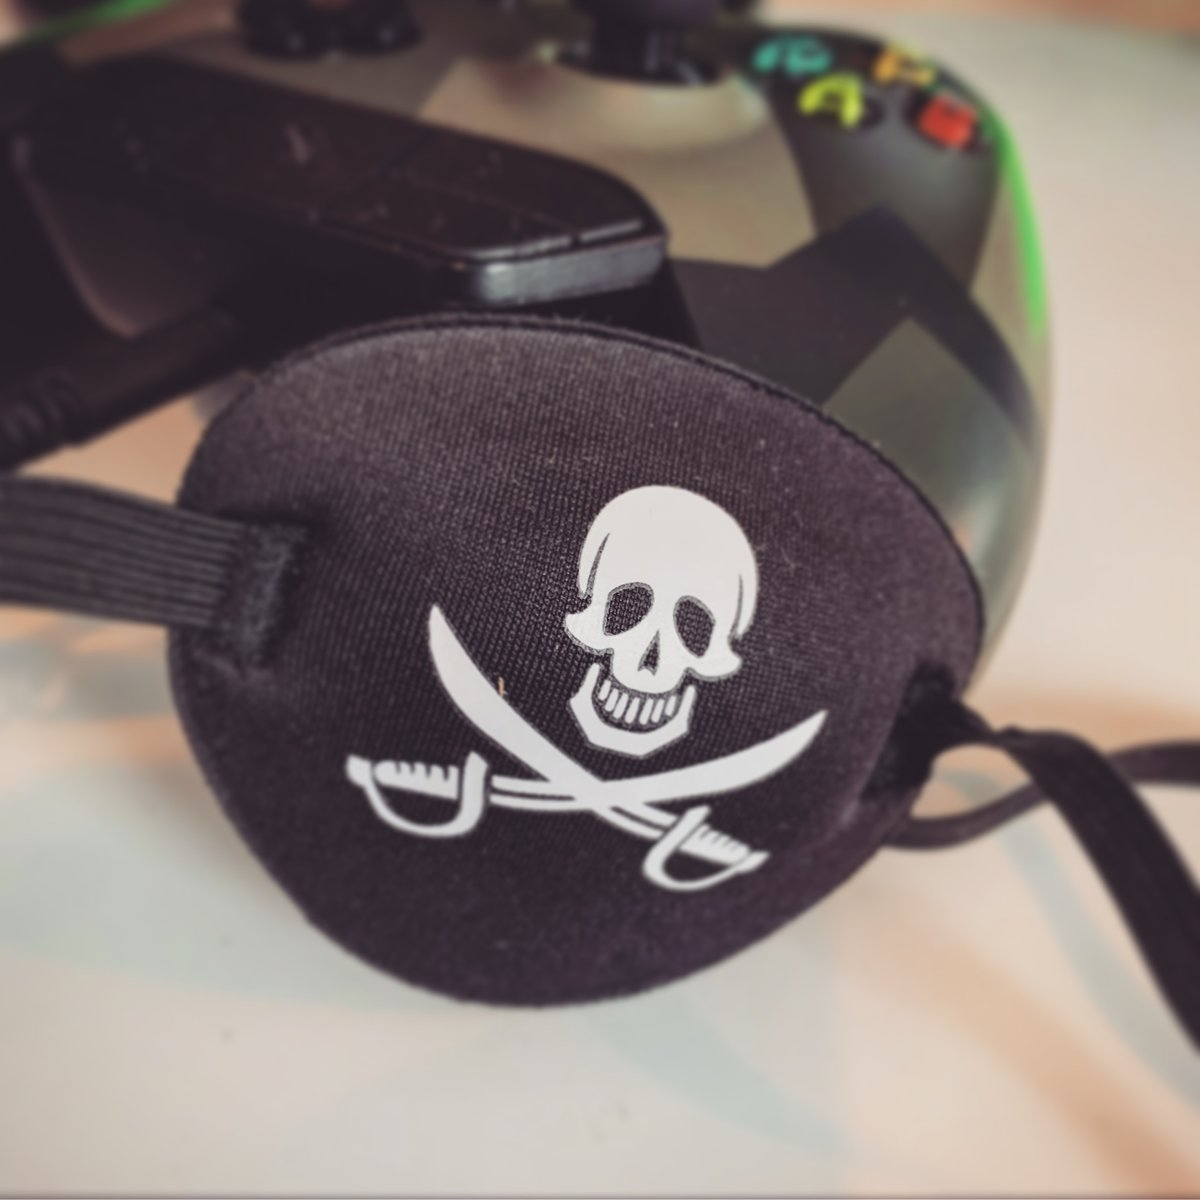 We LOVE Sea of Thieves we will be streaming tonight on Twitch - Checkout http://www.twitch.tv/hairyfacegamers #gaming #gamingmemes #gaminglife #GamingPosts #gamingsetup #Gamingmeme #gamingpc #gamingcommunity #gamingroom #gamingrig #gamingislife #gamingnews #gaminggear pic.twitter.com/ojY3hNoQtB